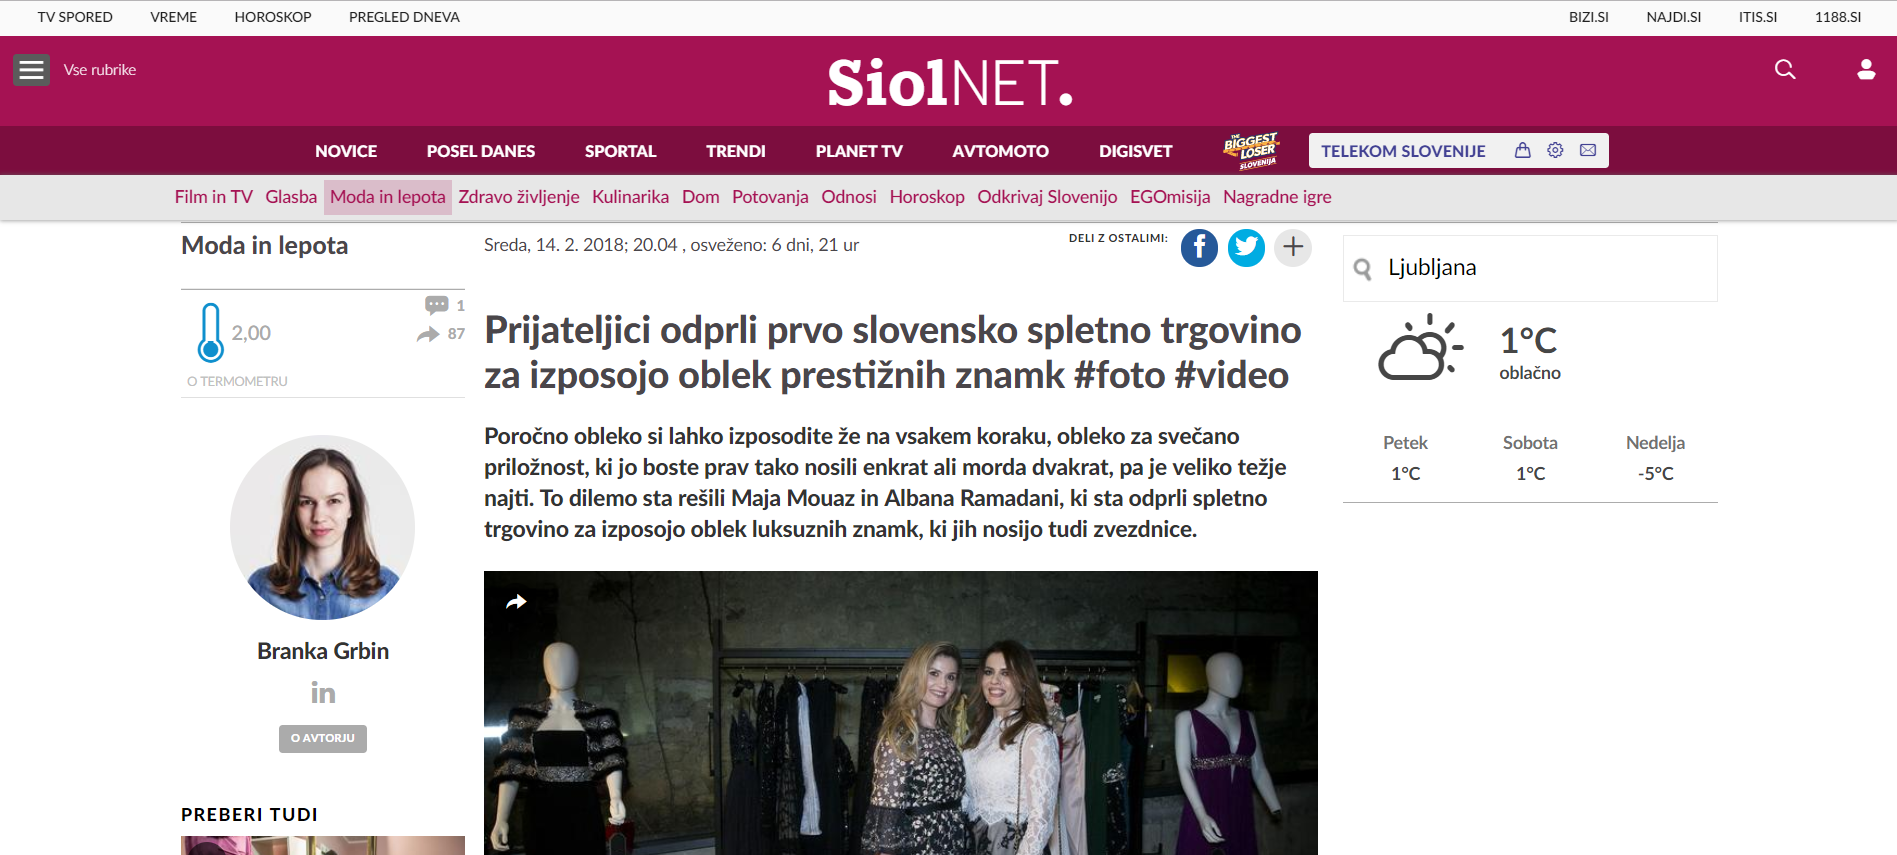 image of article in sio1.net